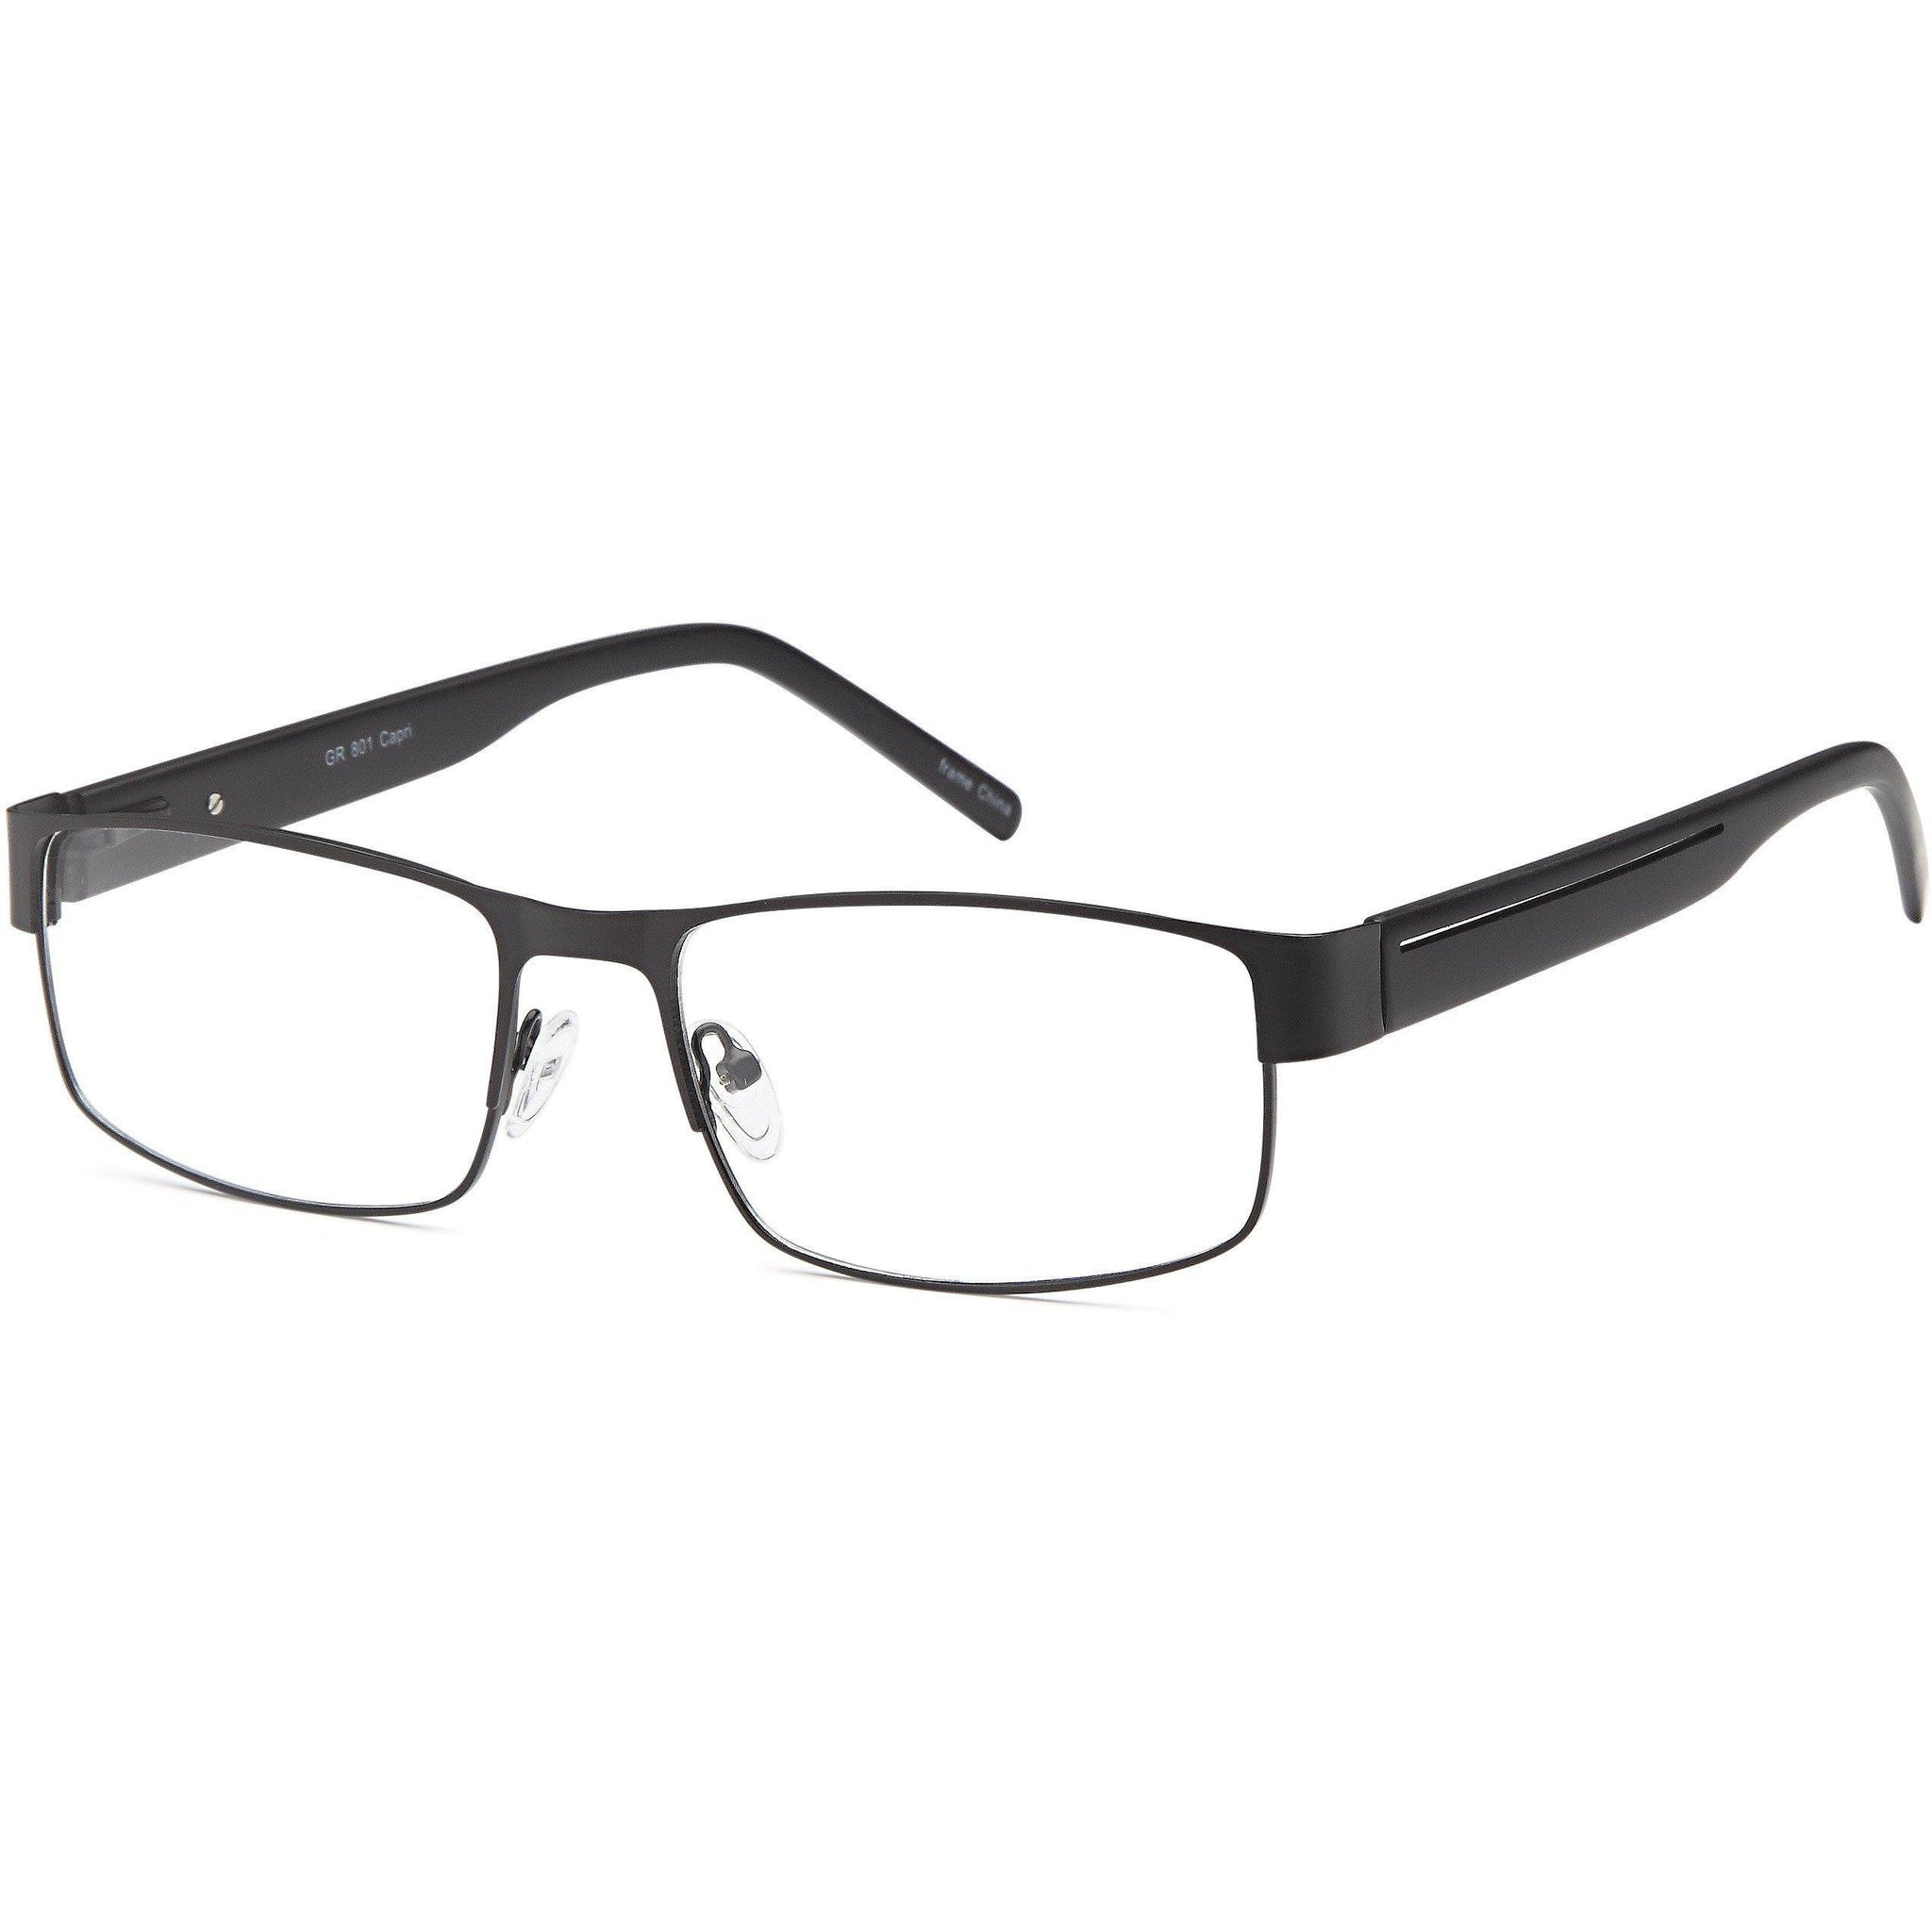 SizeUp Prescription Glasses GR 801 Eyeglasses Frames